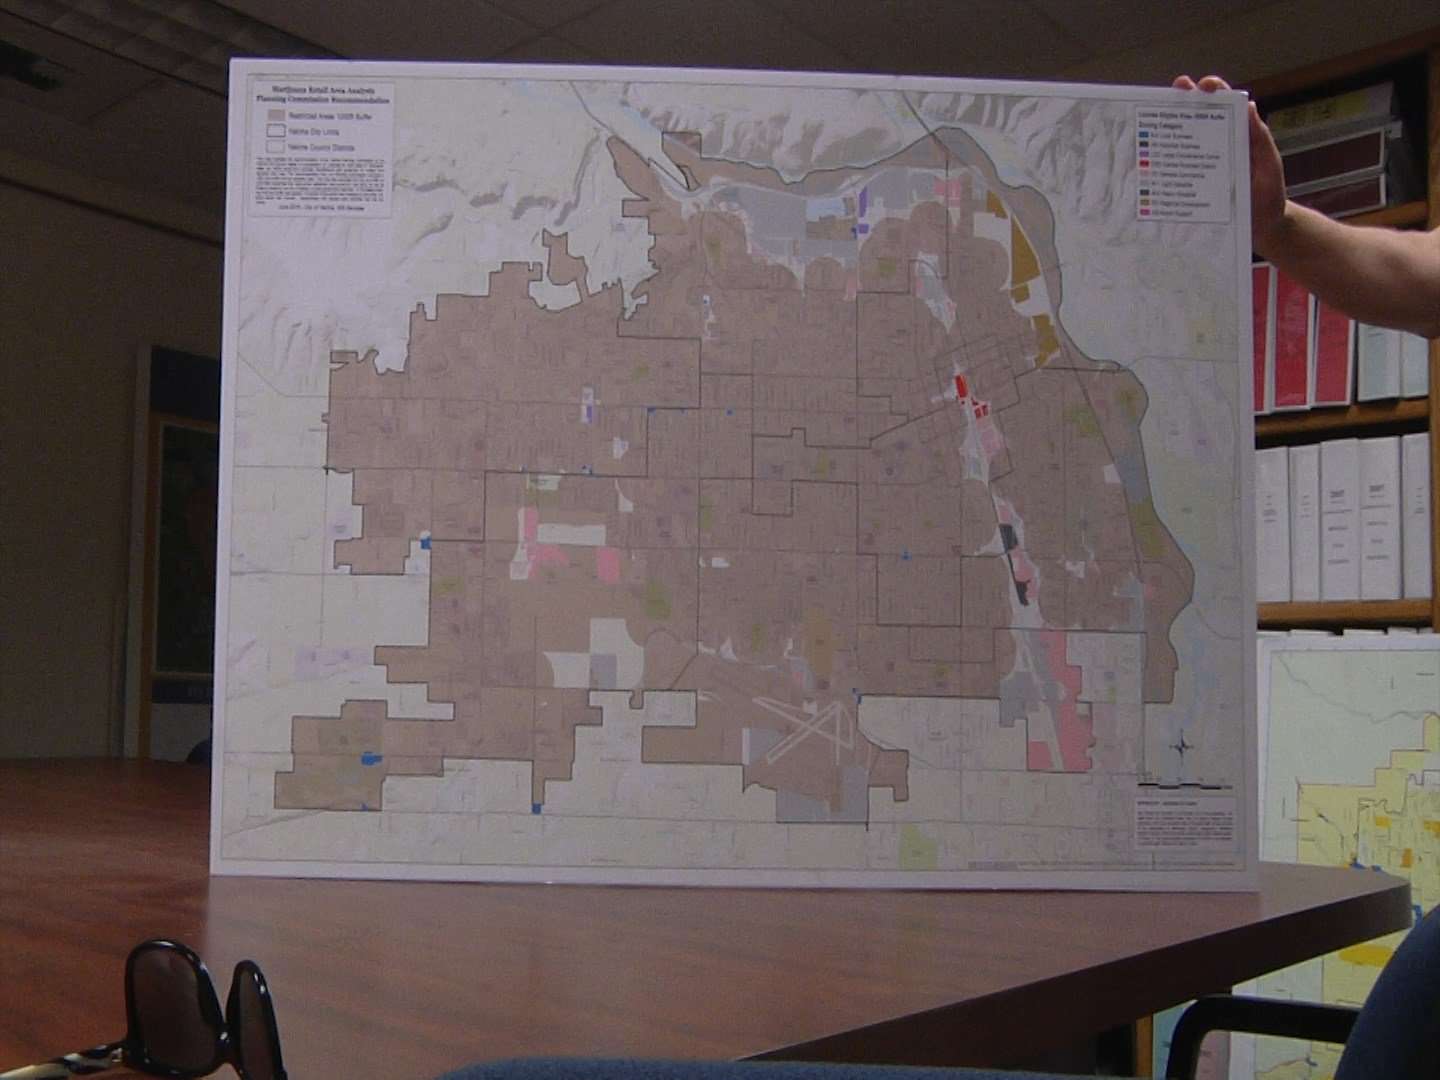 Here is a map depicting the 1000 foot buffer recommendation.